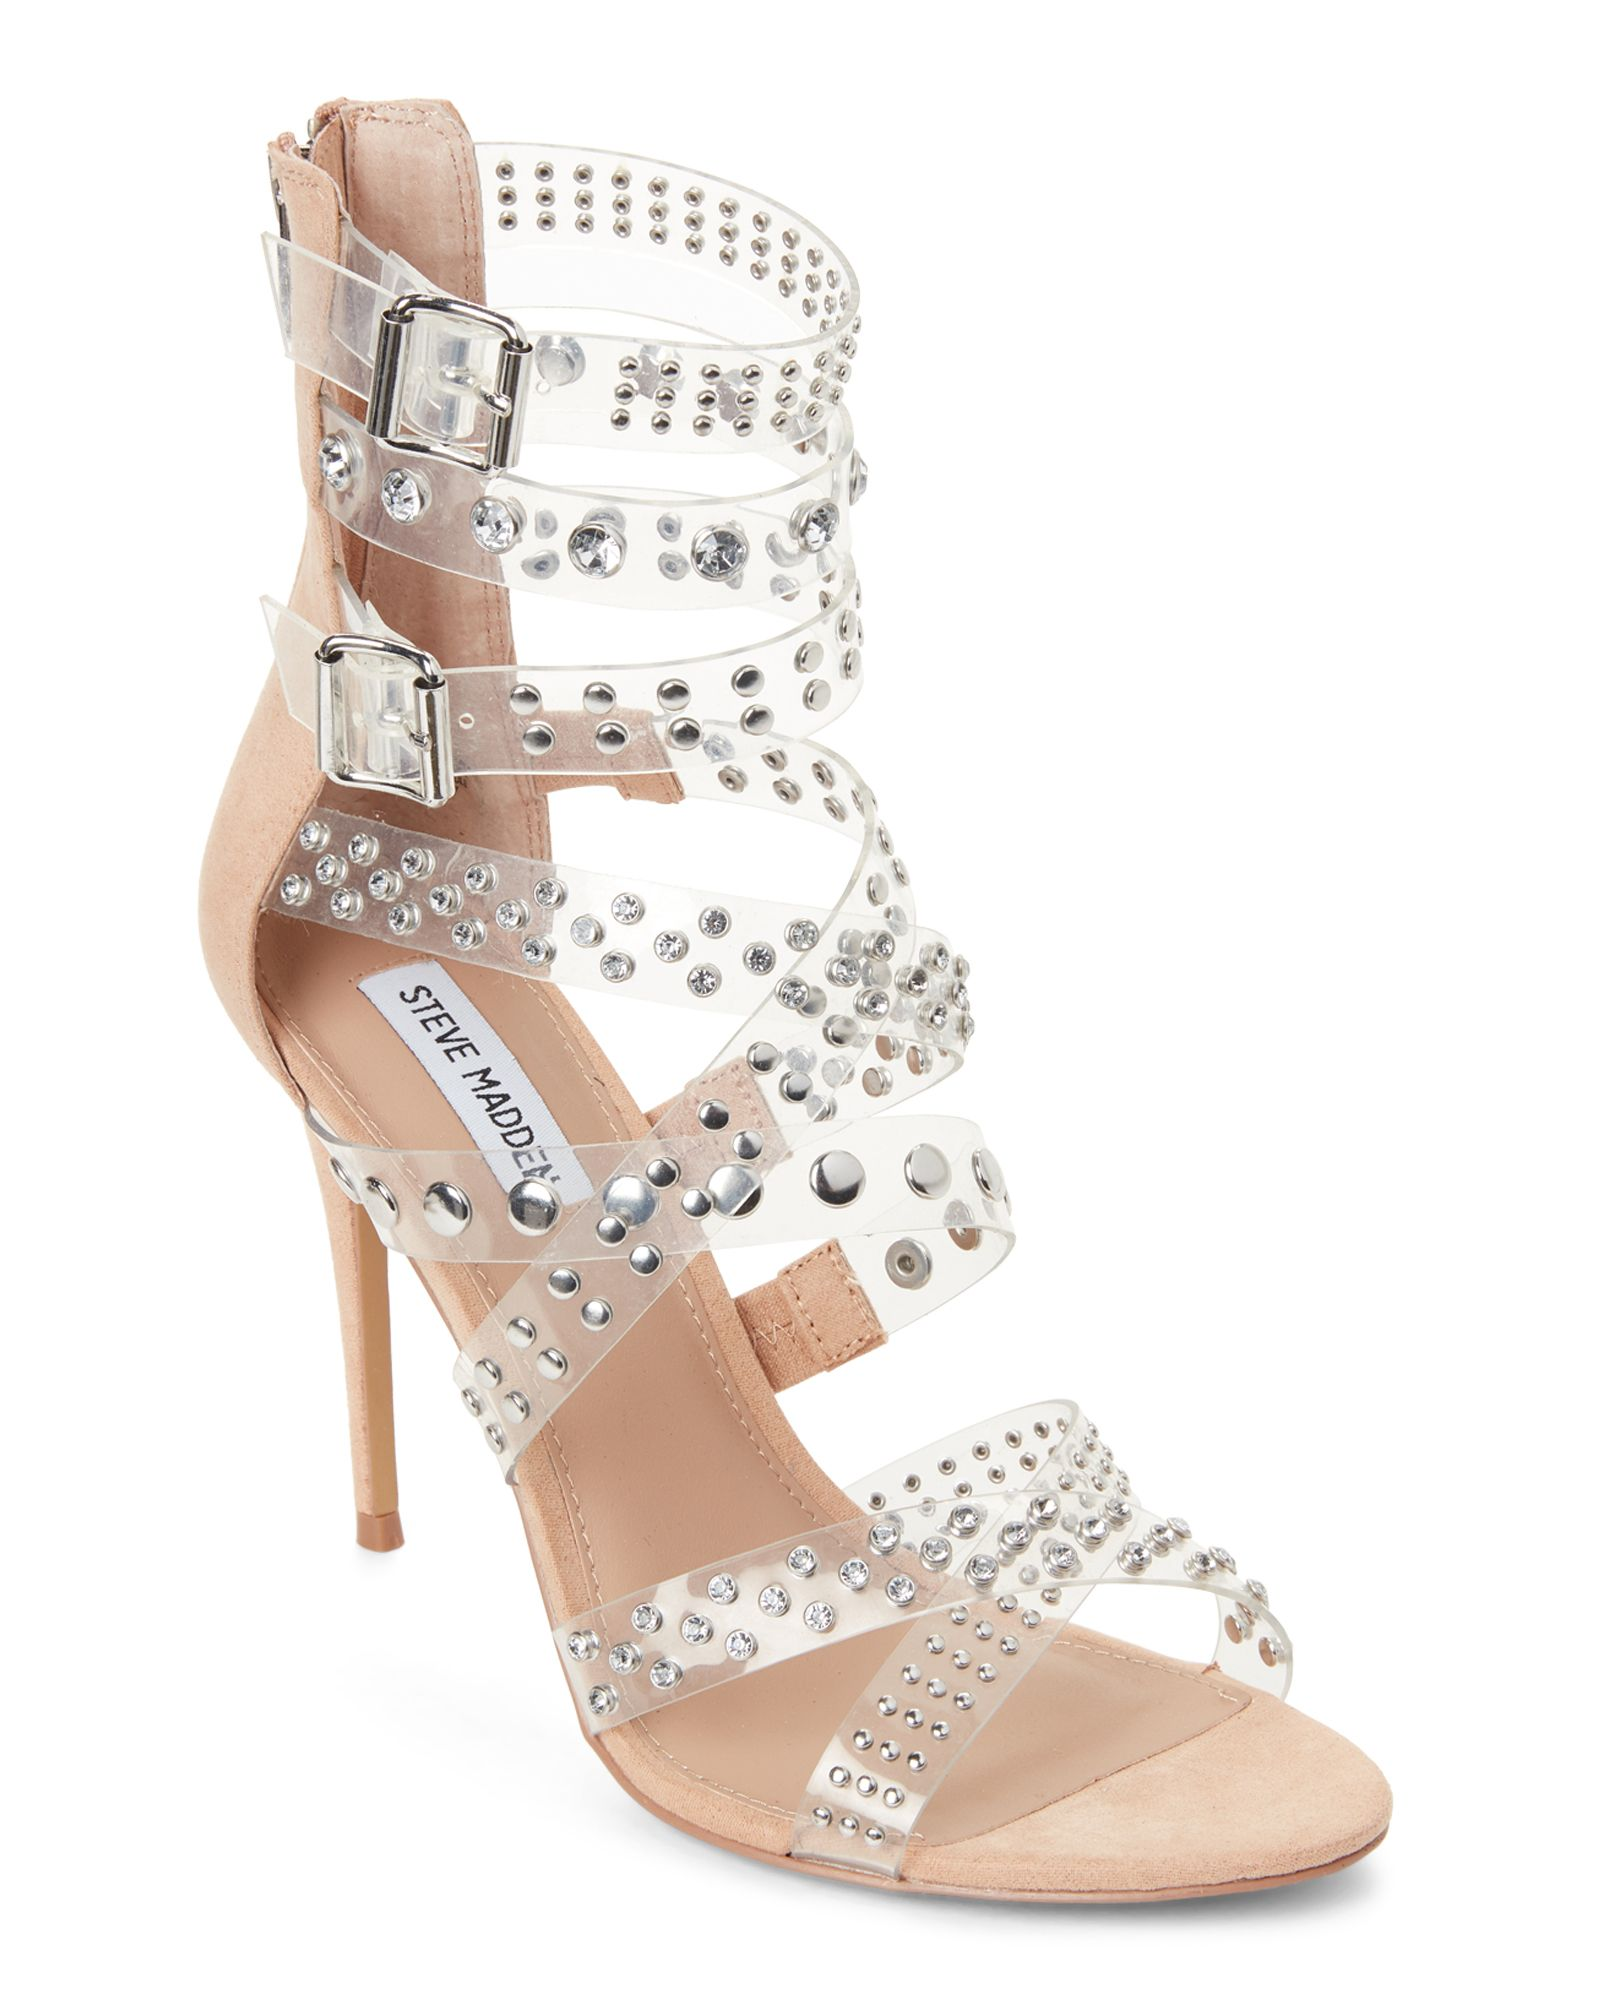 Lionel Green Street Caso Wardian Navidad  Steve Madden Clear Moto PVC Studded Strappy Sandals | Strappy sandals,  Studded, Stiletto pumps